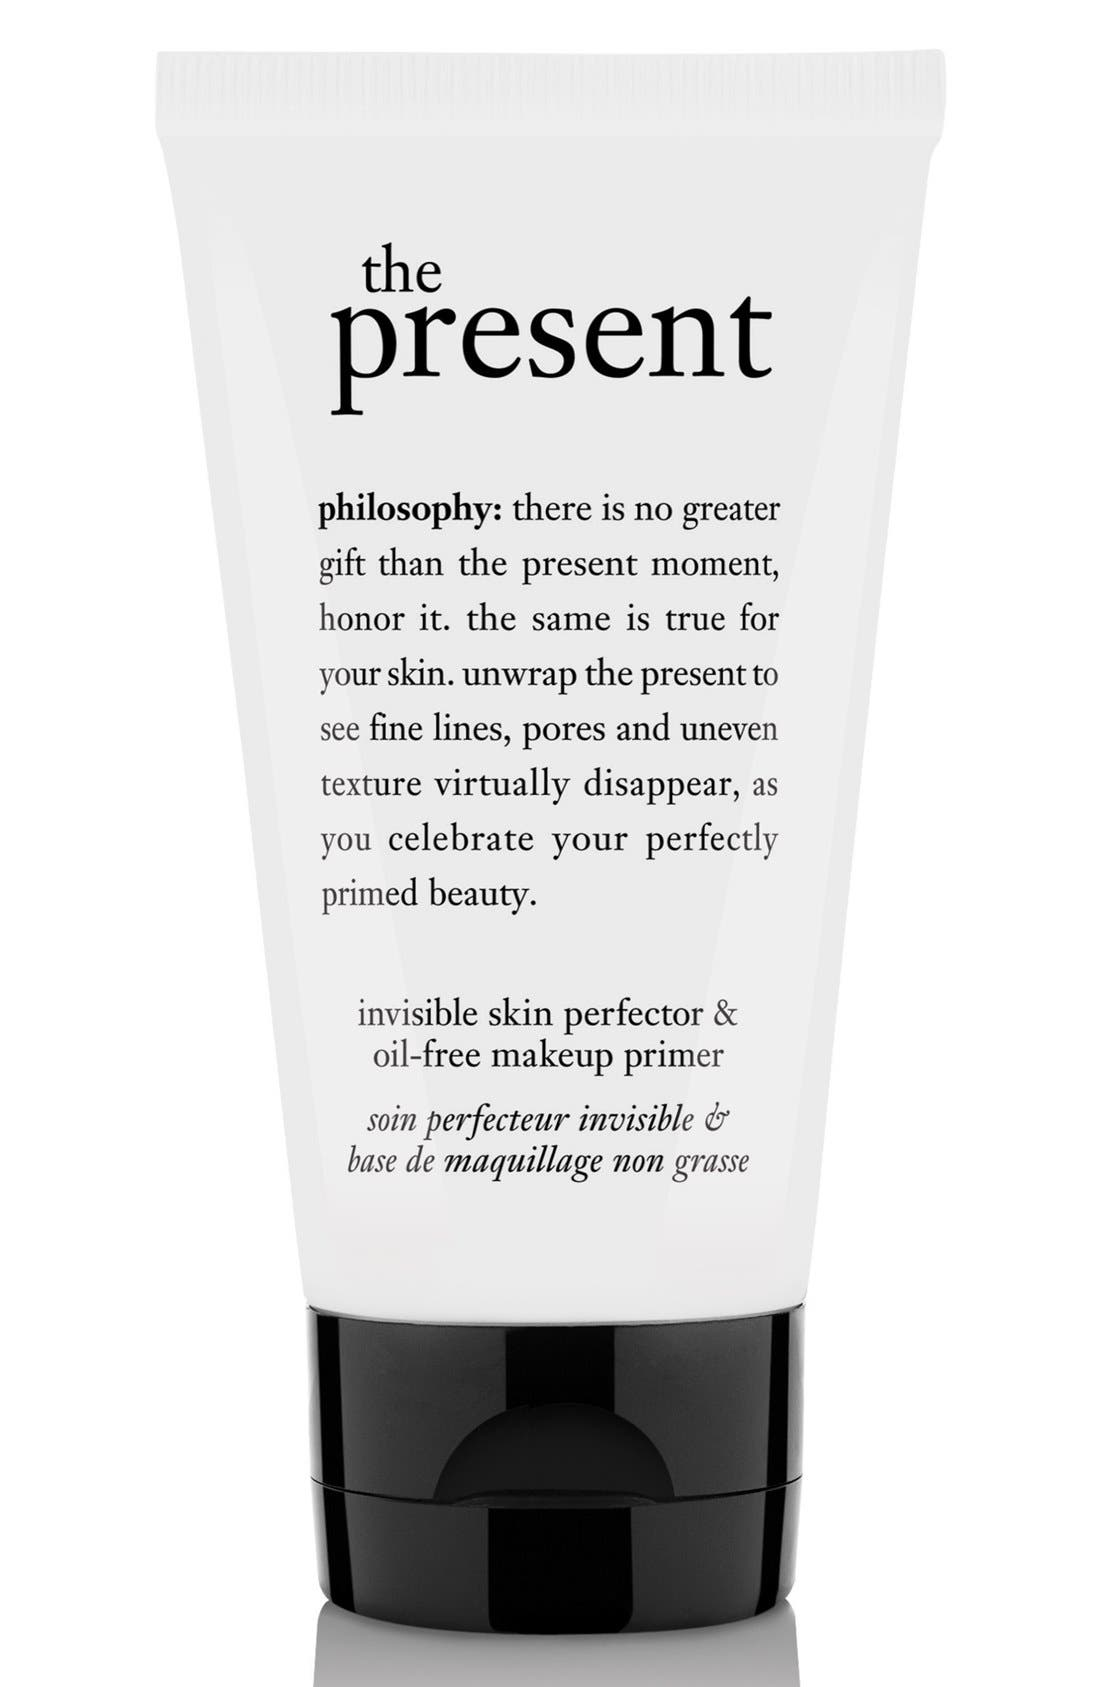 philosophy 'the present' skin perfector & oil-free makeup primer